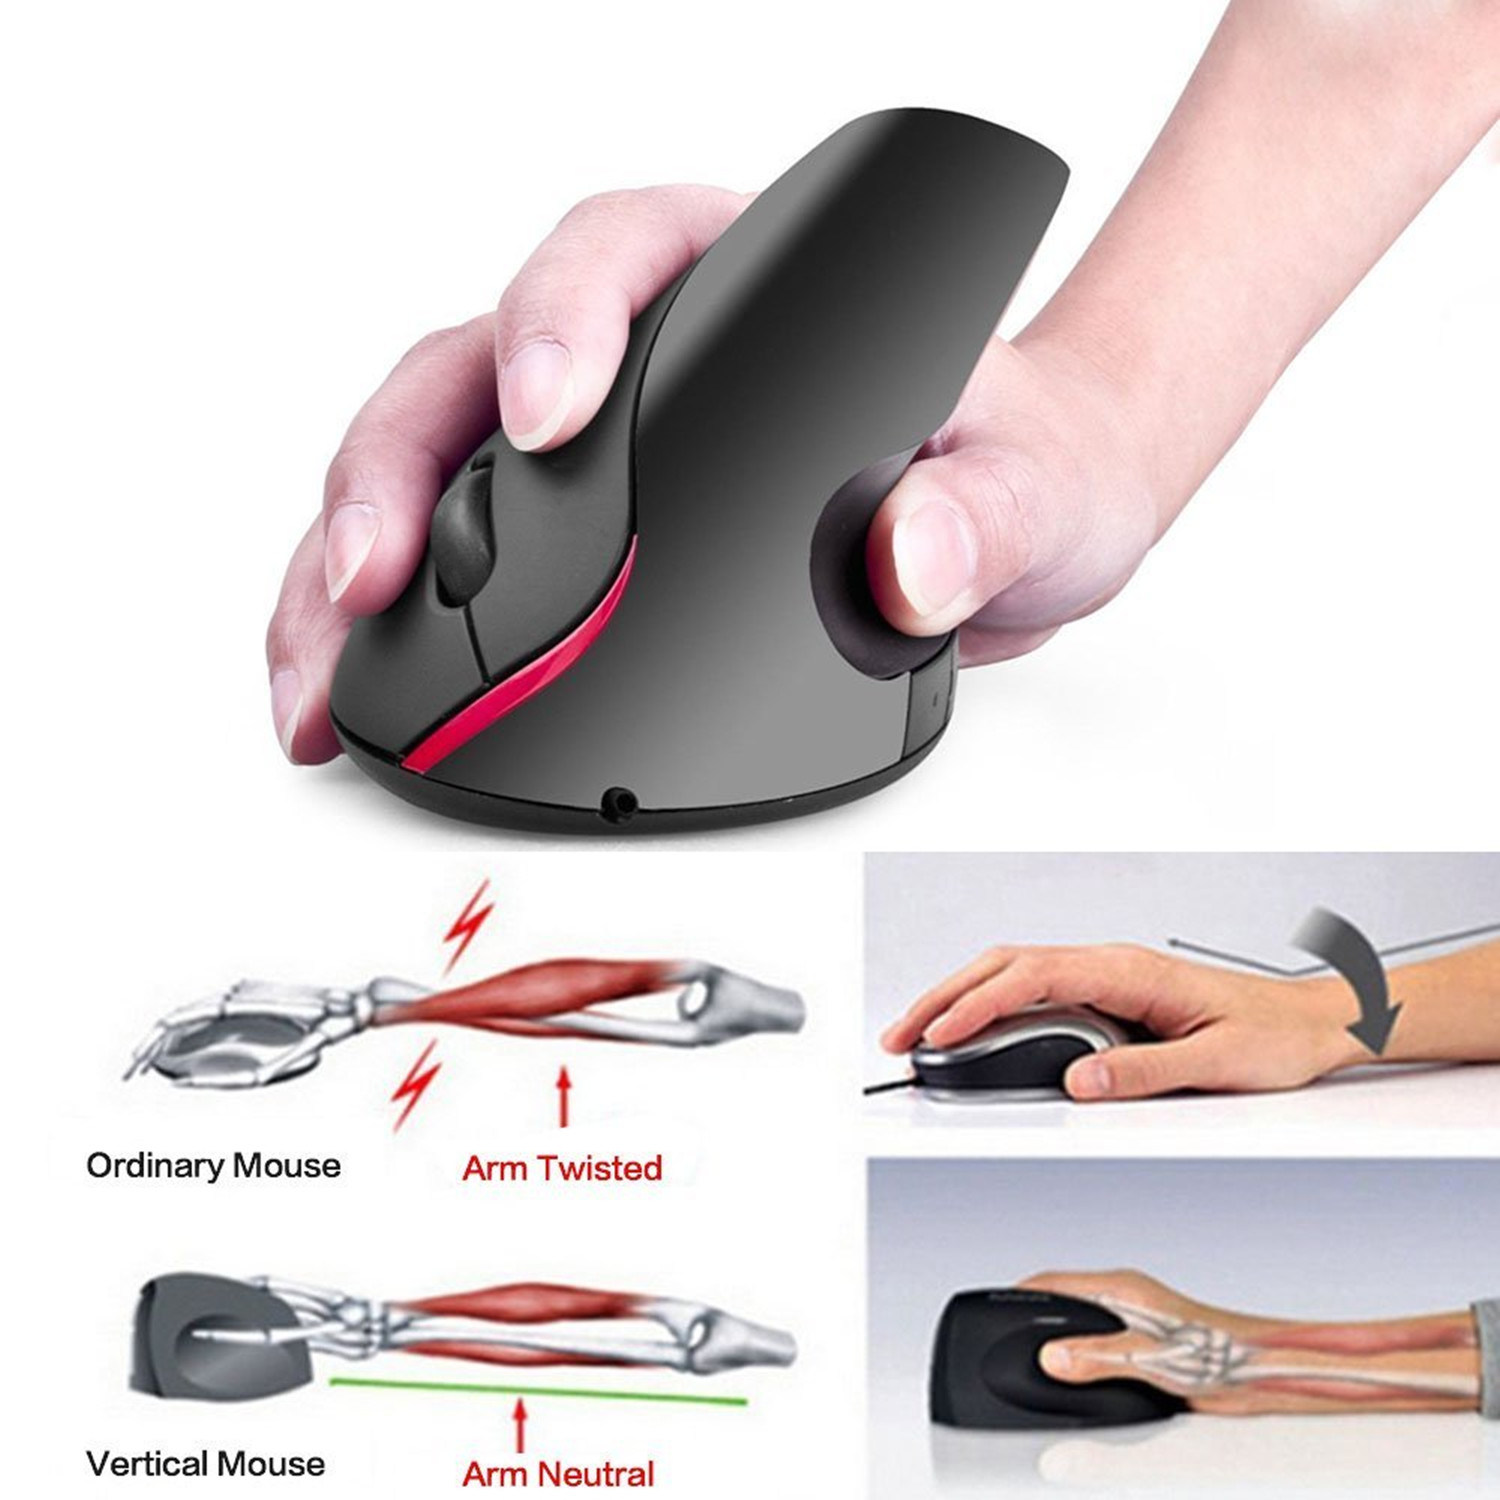 2.4G Wireless Gaming Ergonomic Design Optical Vertical 2400dpi Mouse